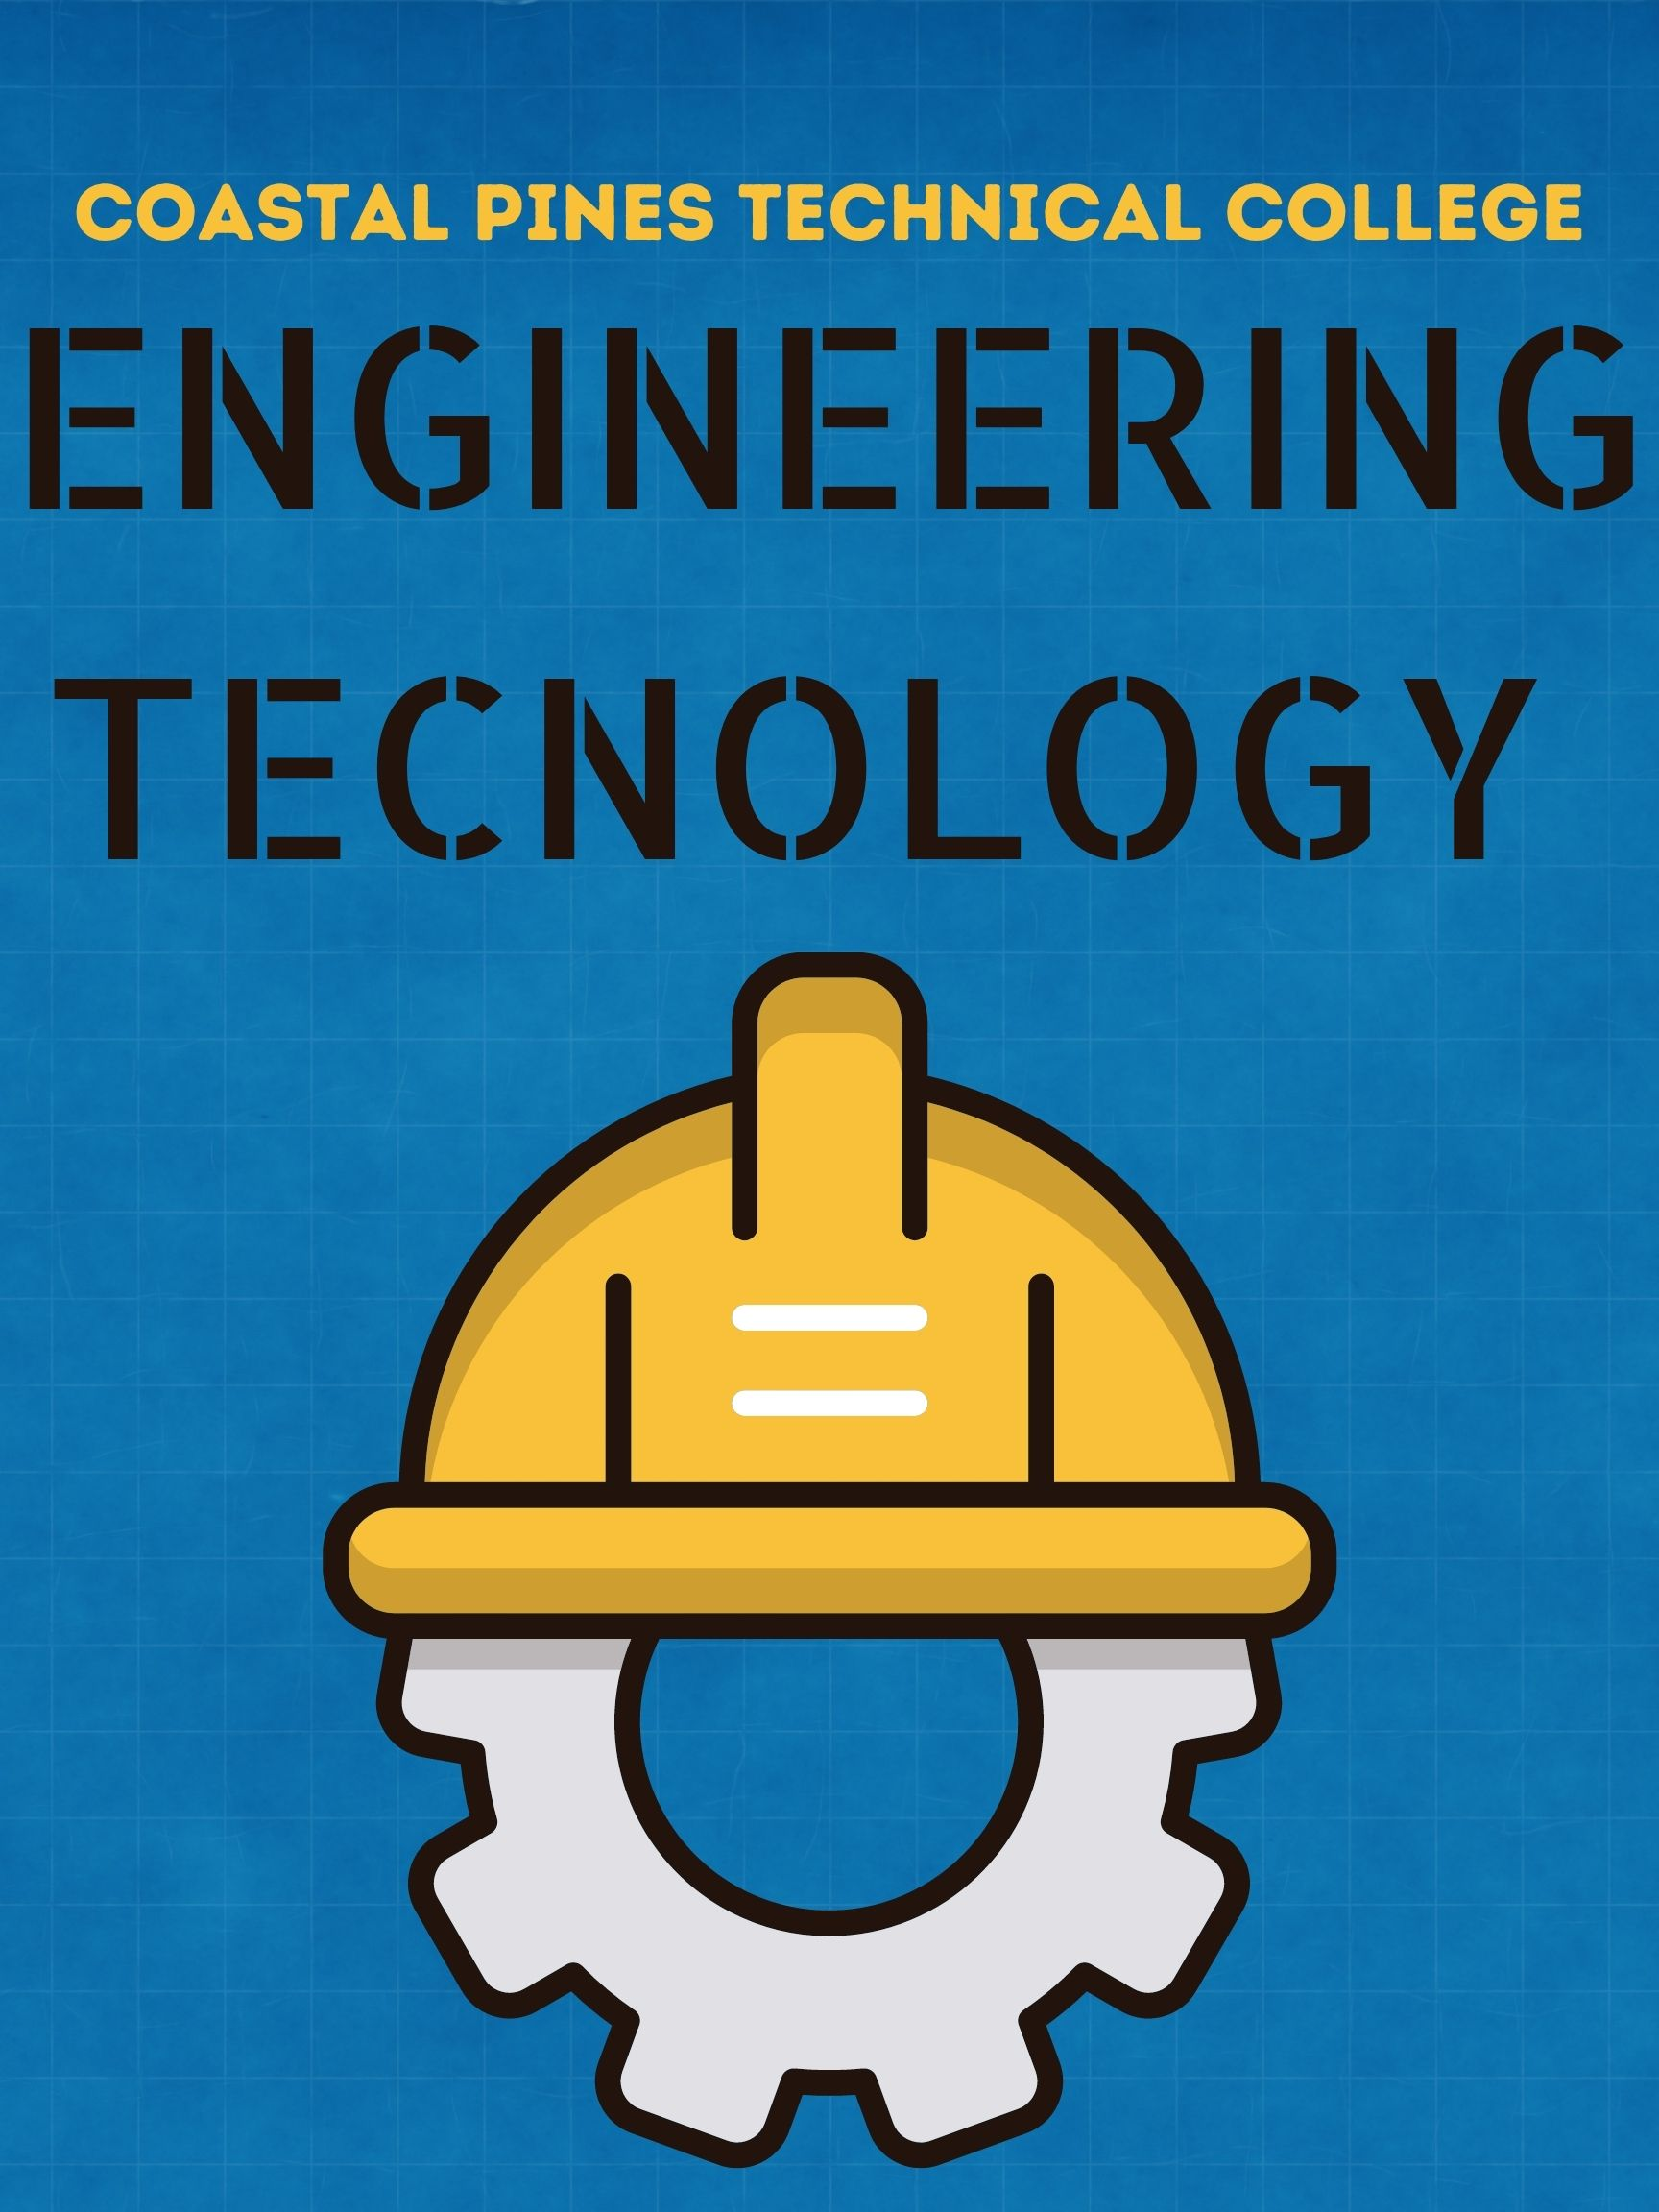 Coastal Pines Technical College Engineering Technology